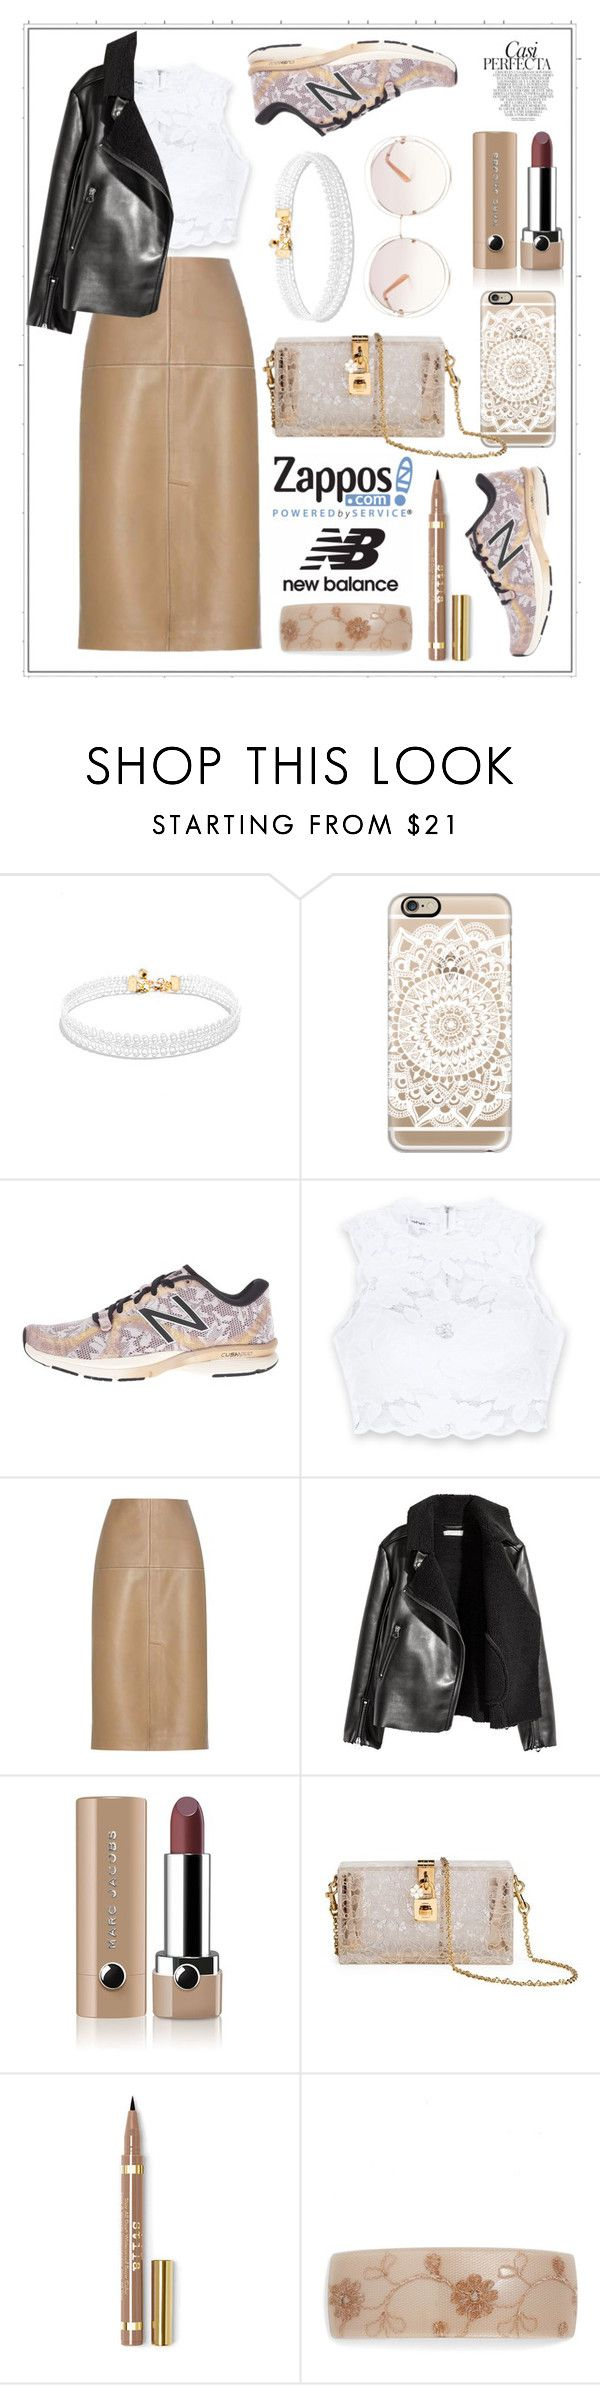 """Run the World in New Balance #448"" by meryflower ❤ liked on Polyvore featuring Vanessa Mooney, Casetify, New Balance, Bebe, By Malene Birger, Marc Jacobs, Dolce&Gabbana, France Luxe, Chloé and Whiteley"